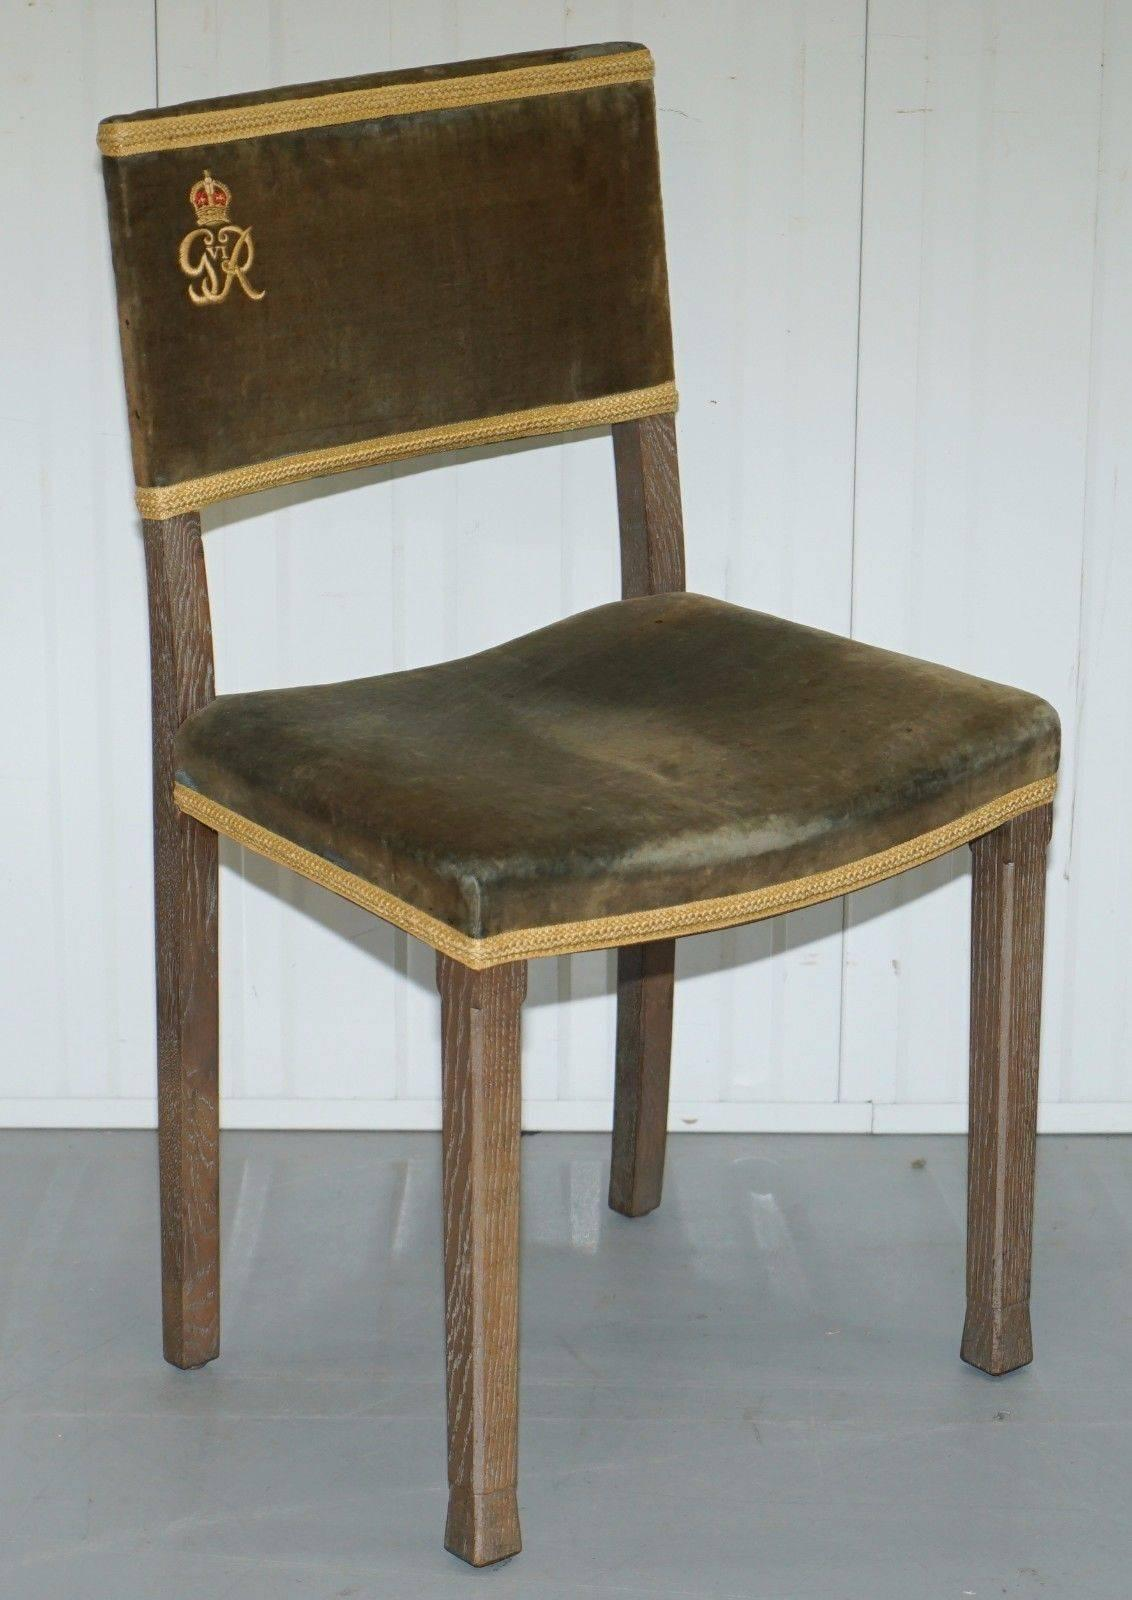 Charmant Wimbledon Furniture Wimbledon Furniture Is Delighted To Offer For Sale This  Exceptionally Rare 1937